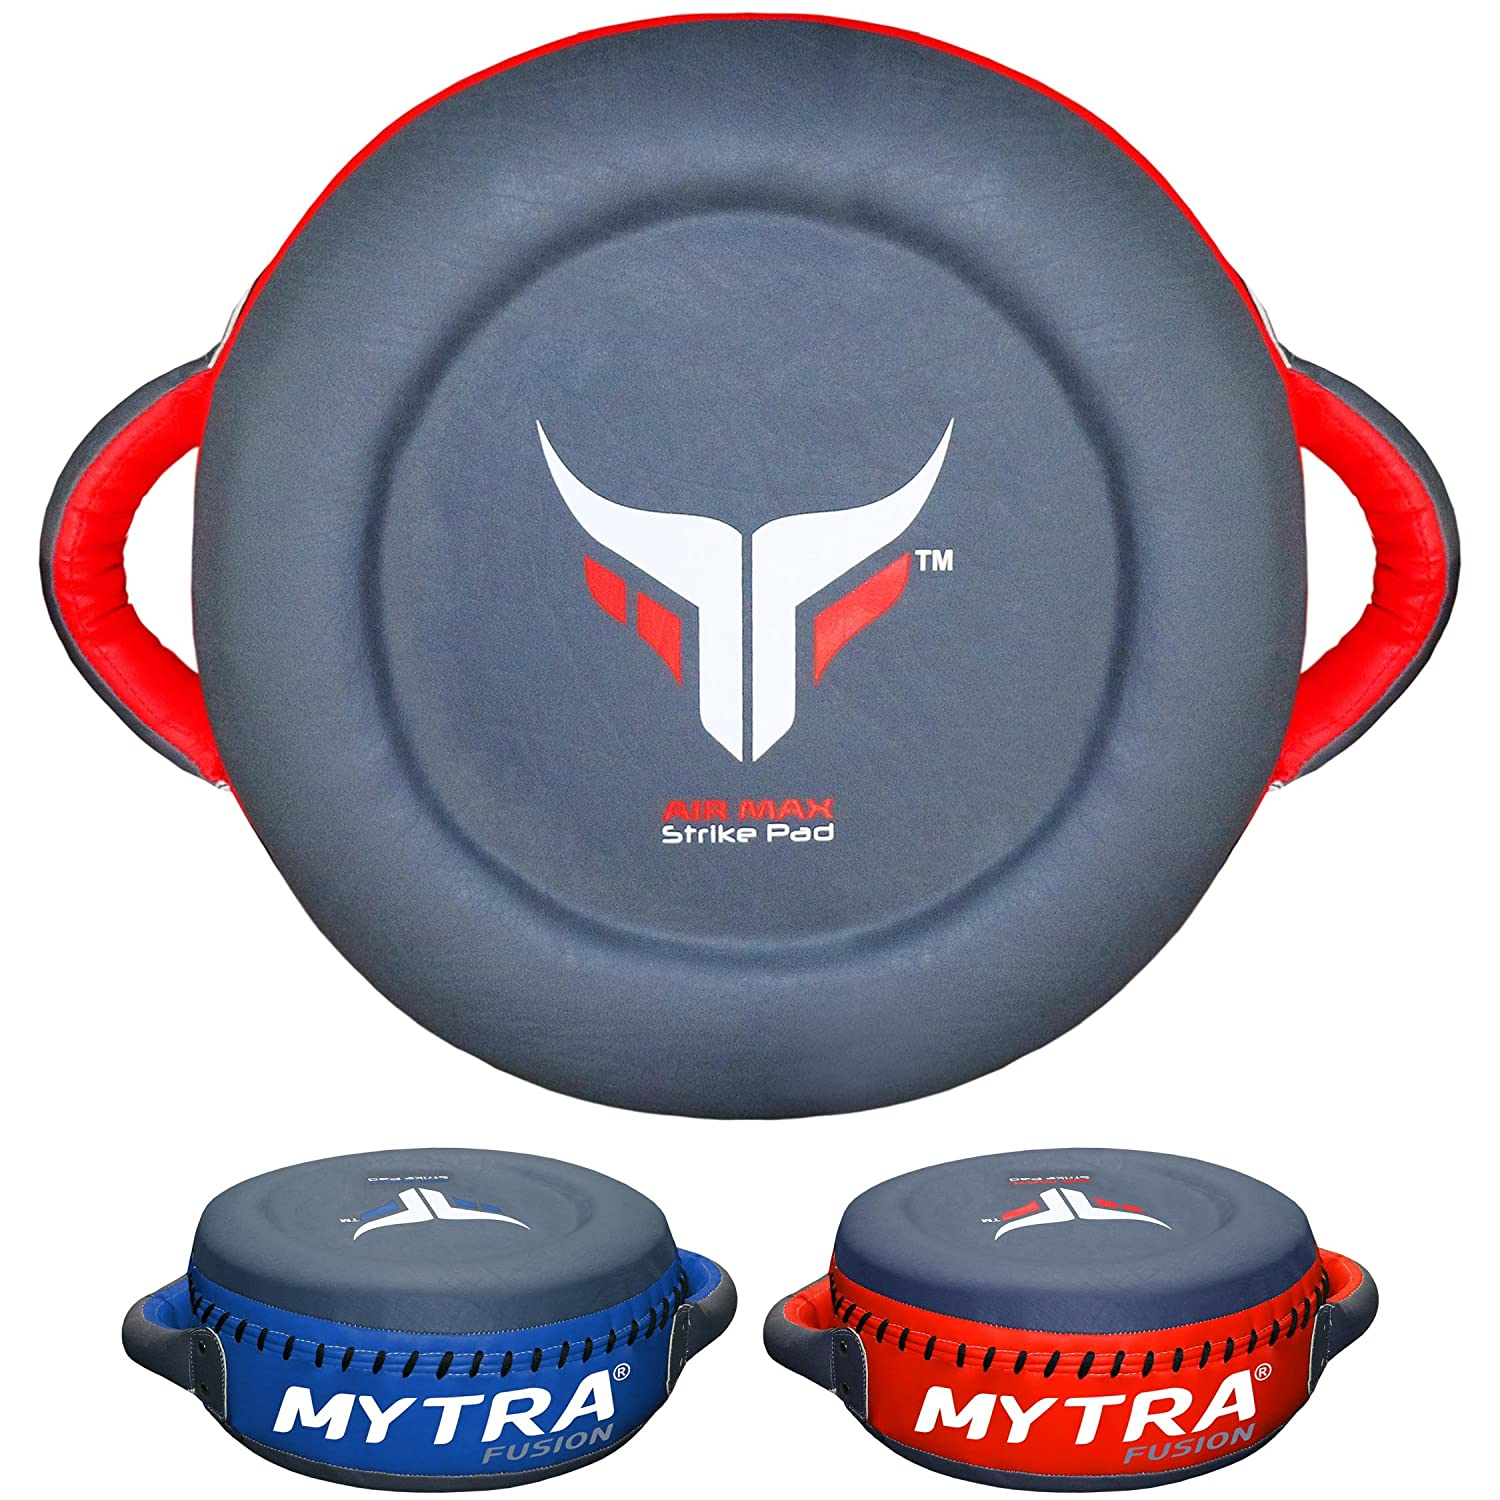 Mytra Fusion Synthetic Leather Strike Pad Boxing Pads Muay Thai MMA Punching Training Pads Focus pad Dummy Pads Thai pad Kick pad Training Punching Sparring Pads. Standard Farabi Sports